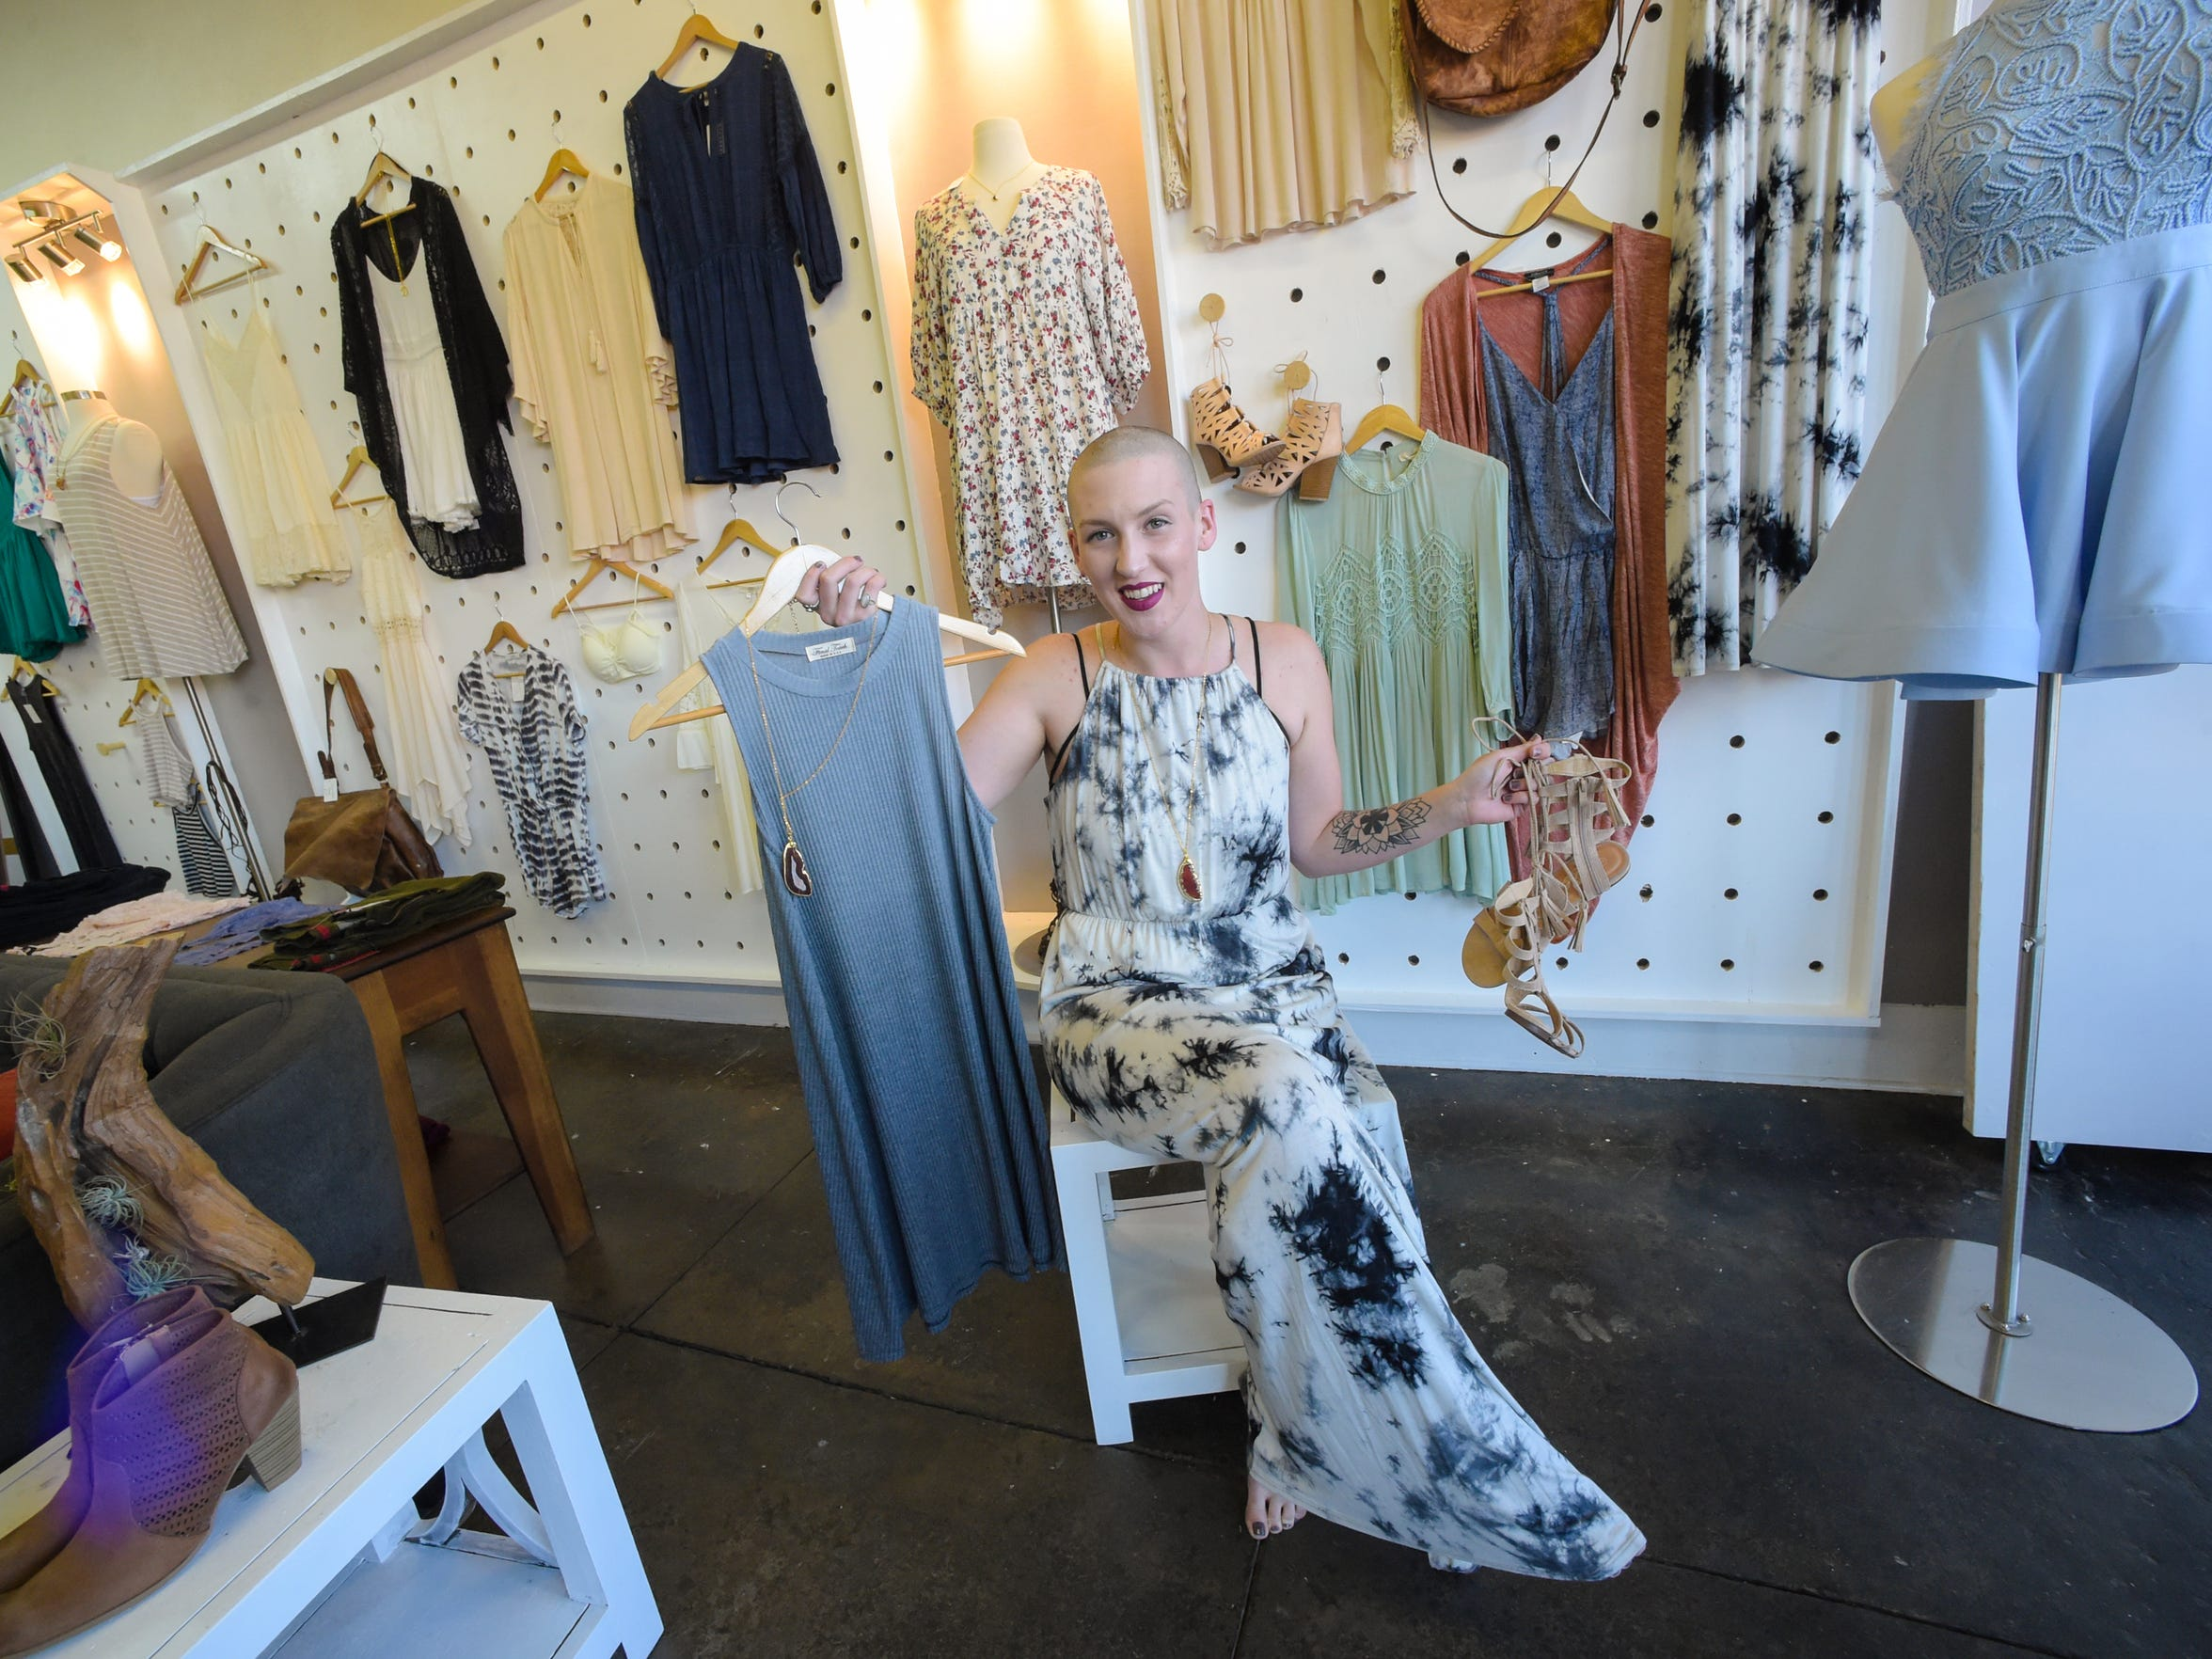 Leah Maxwell caters to women on a budget at her store, Three Little Birds.